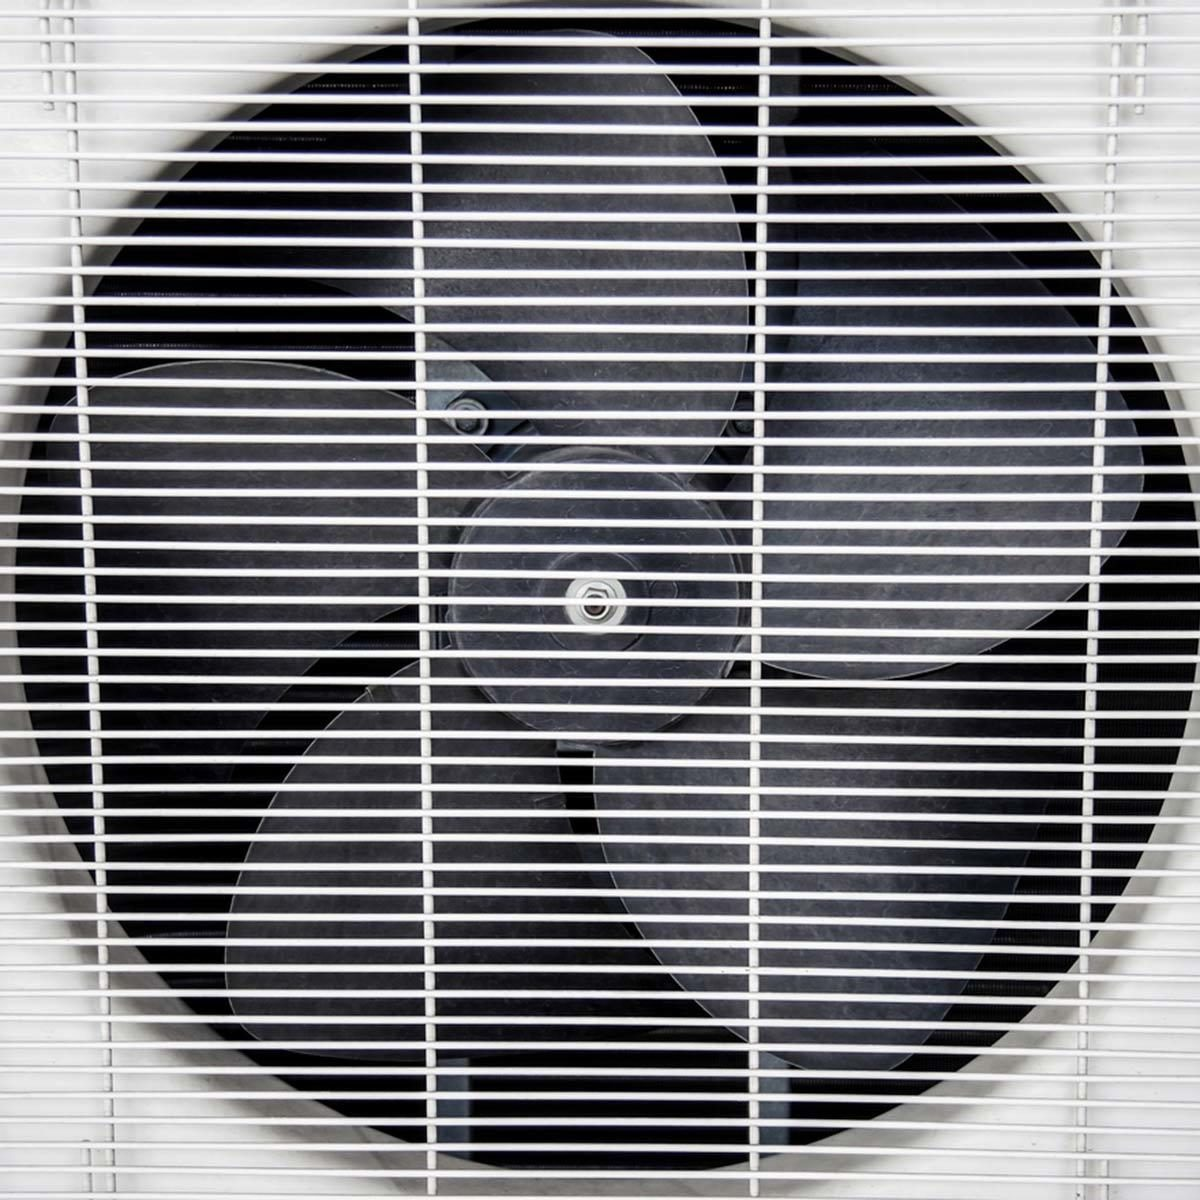 Air Vents and Fans